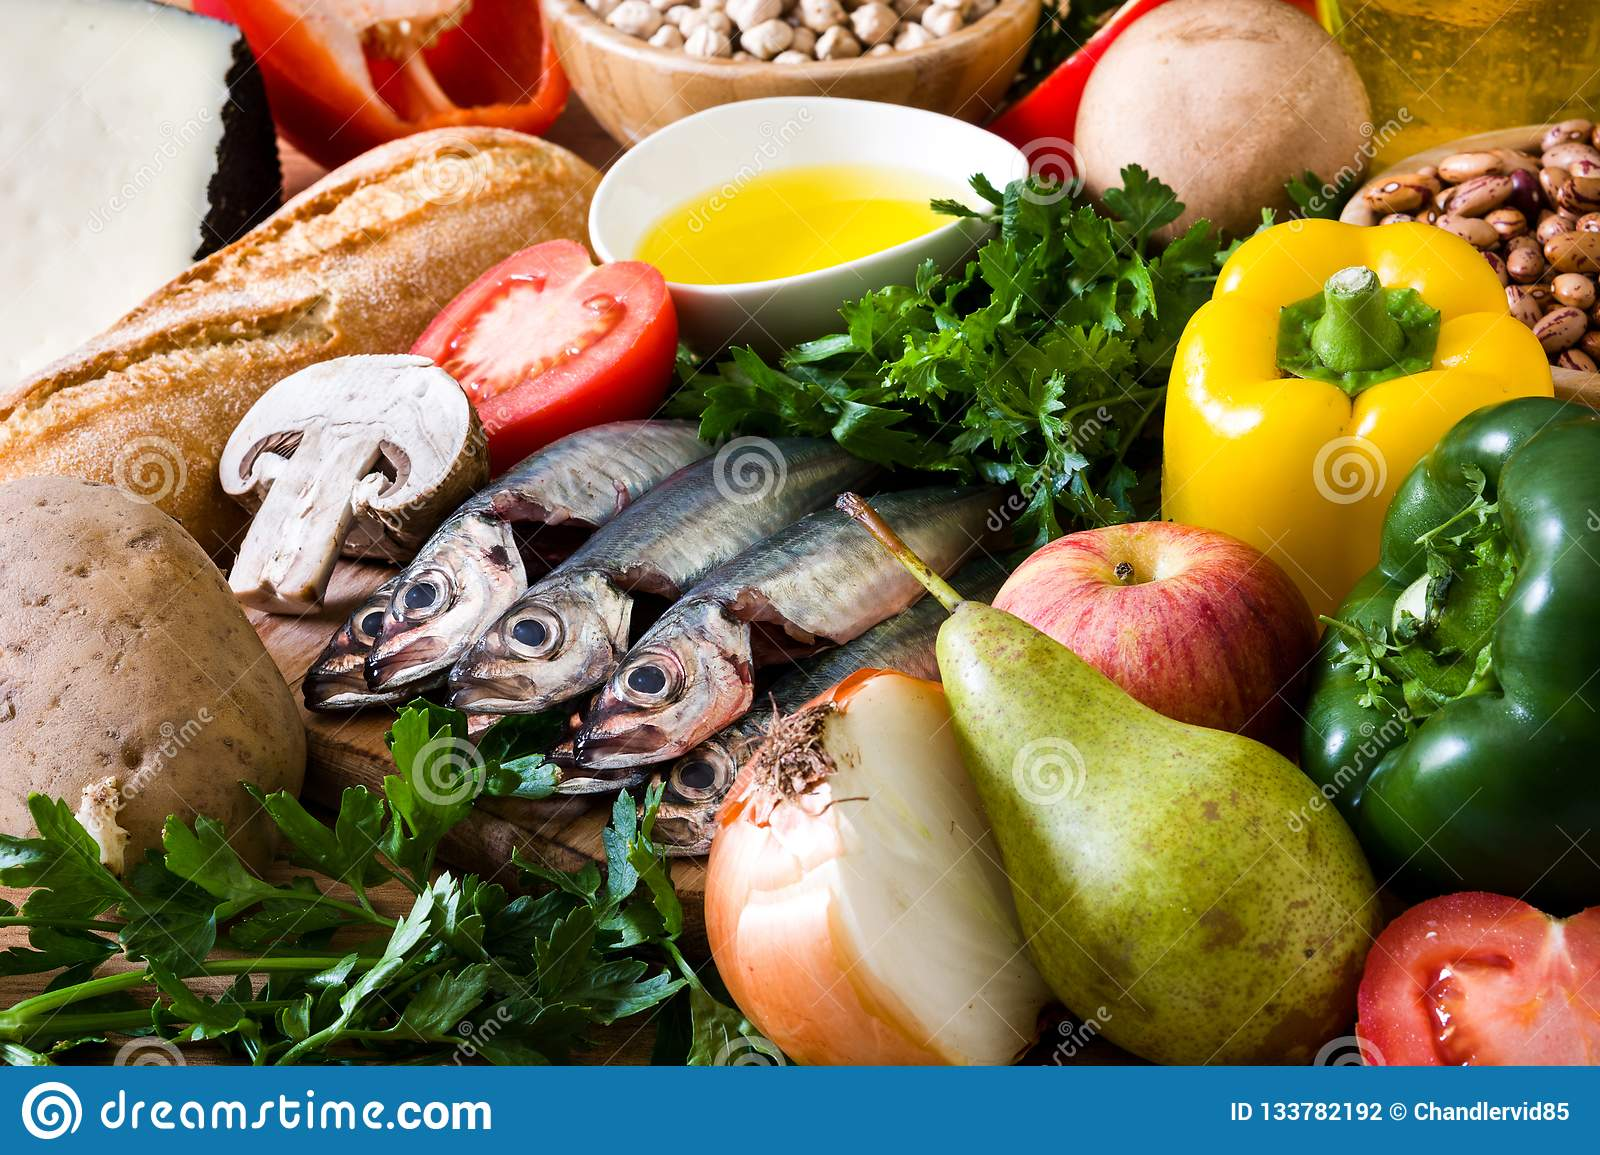 Healthy eating. Mediterranean diet. Fruit,vegetables, grain, nuts olive oil and fish